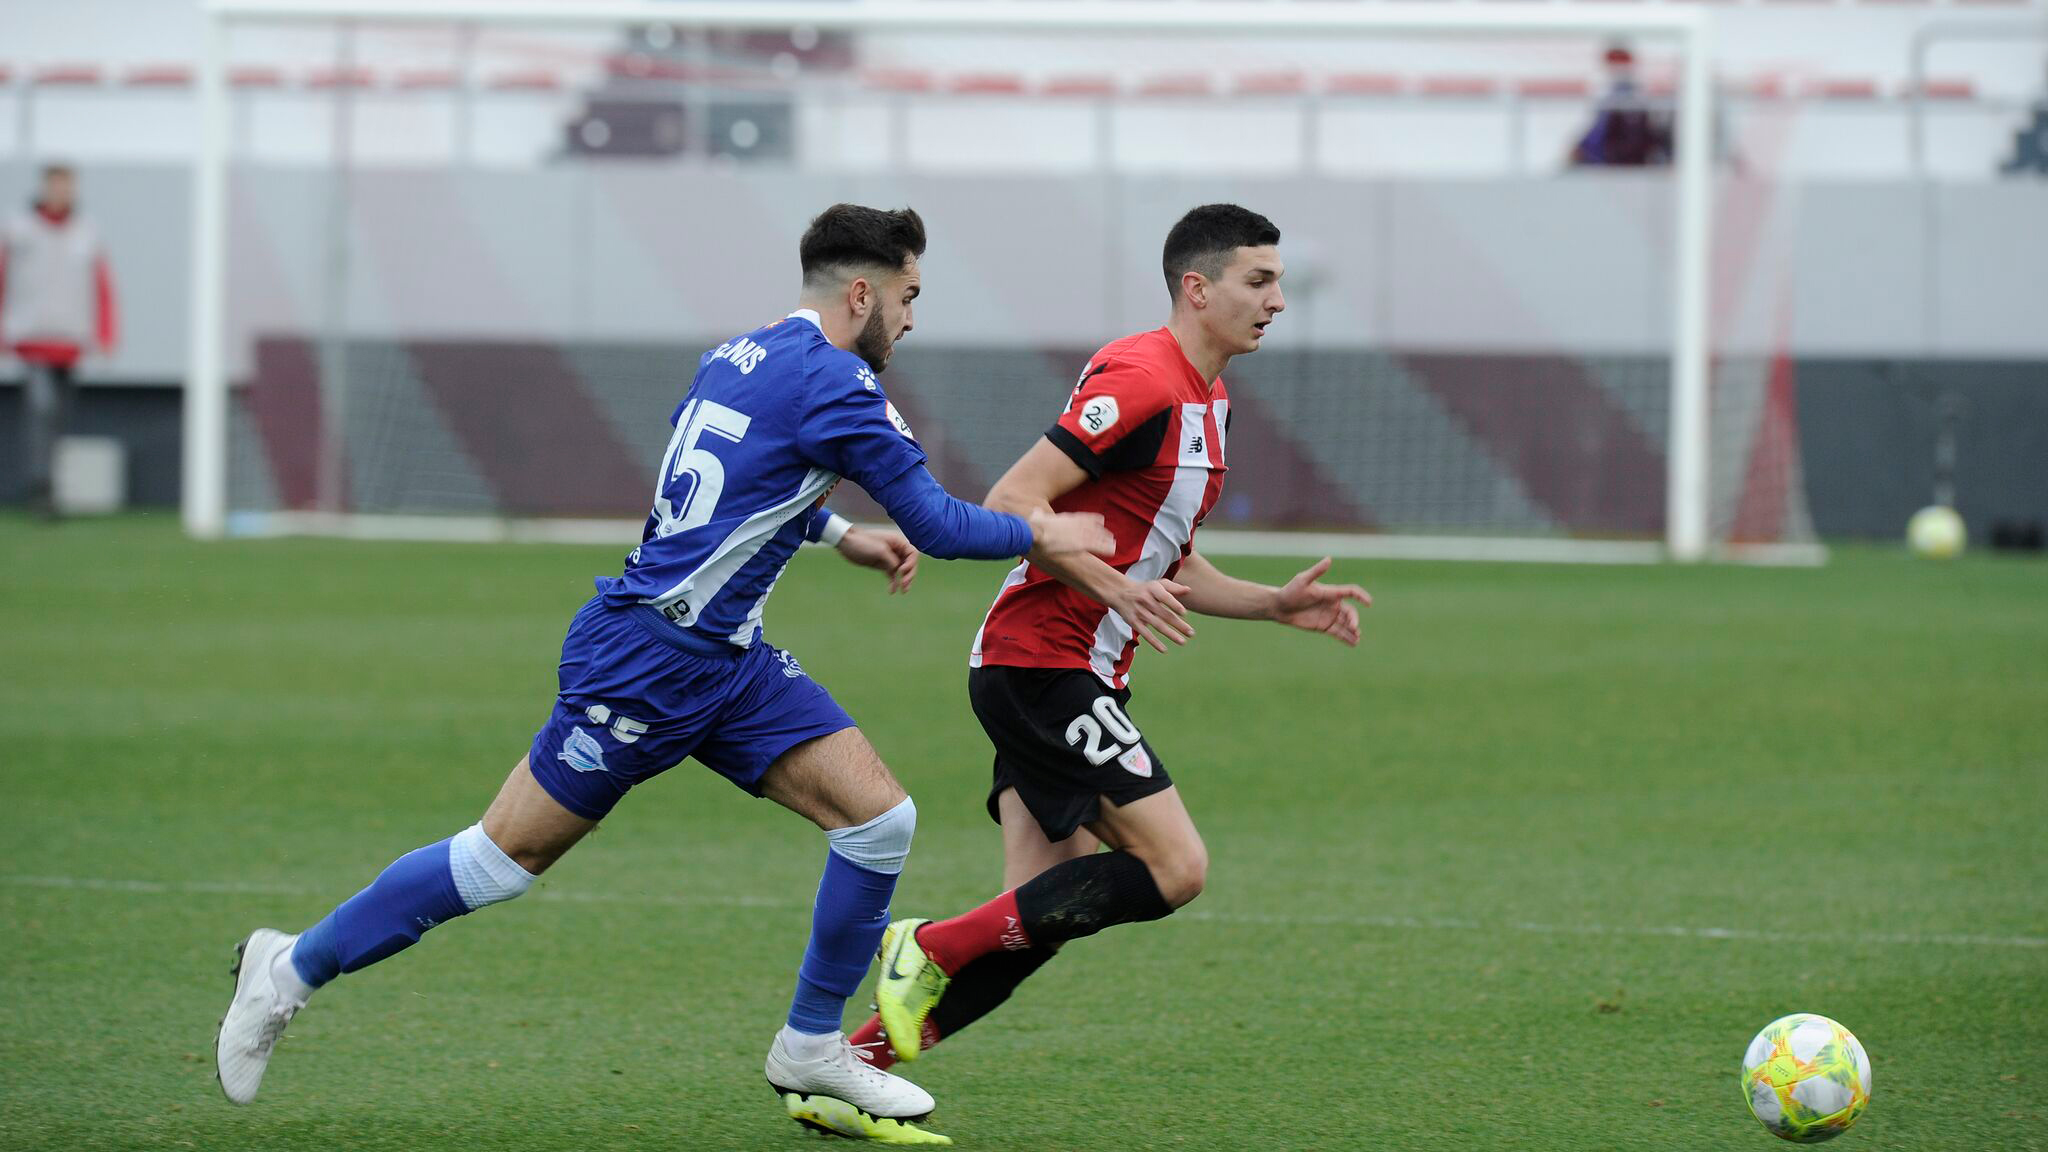 Bilbao Athletic begins the second round in Lezama